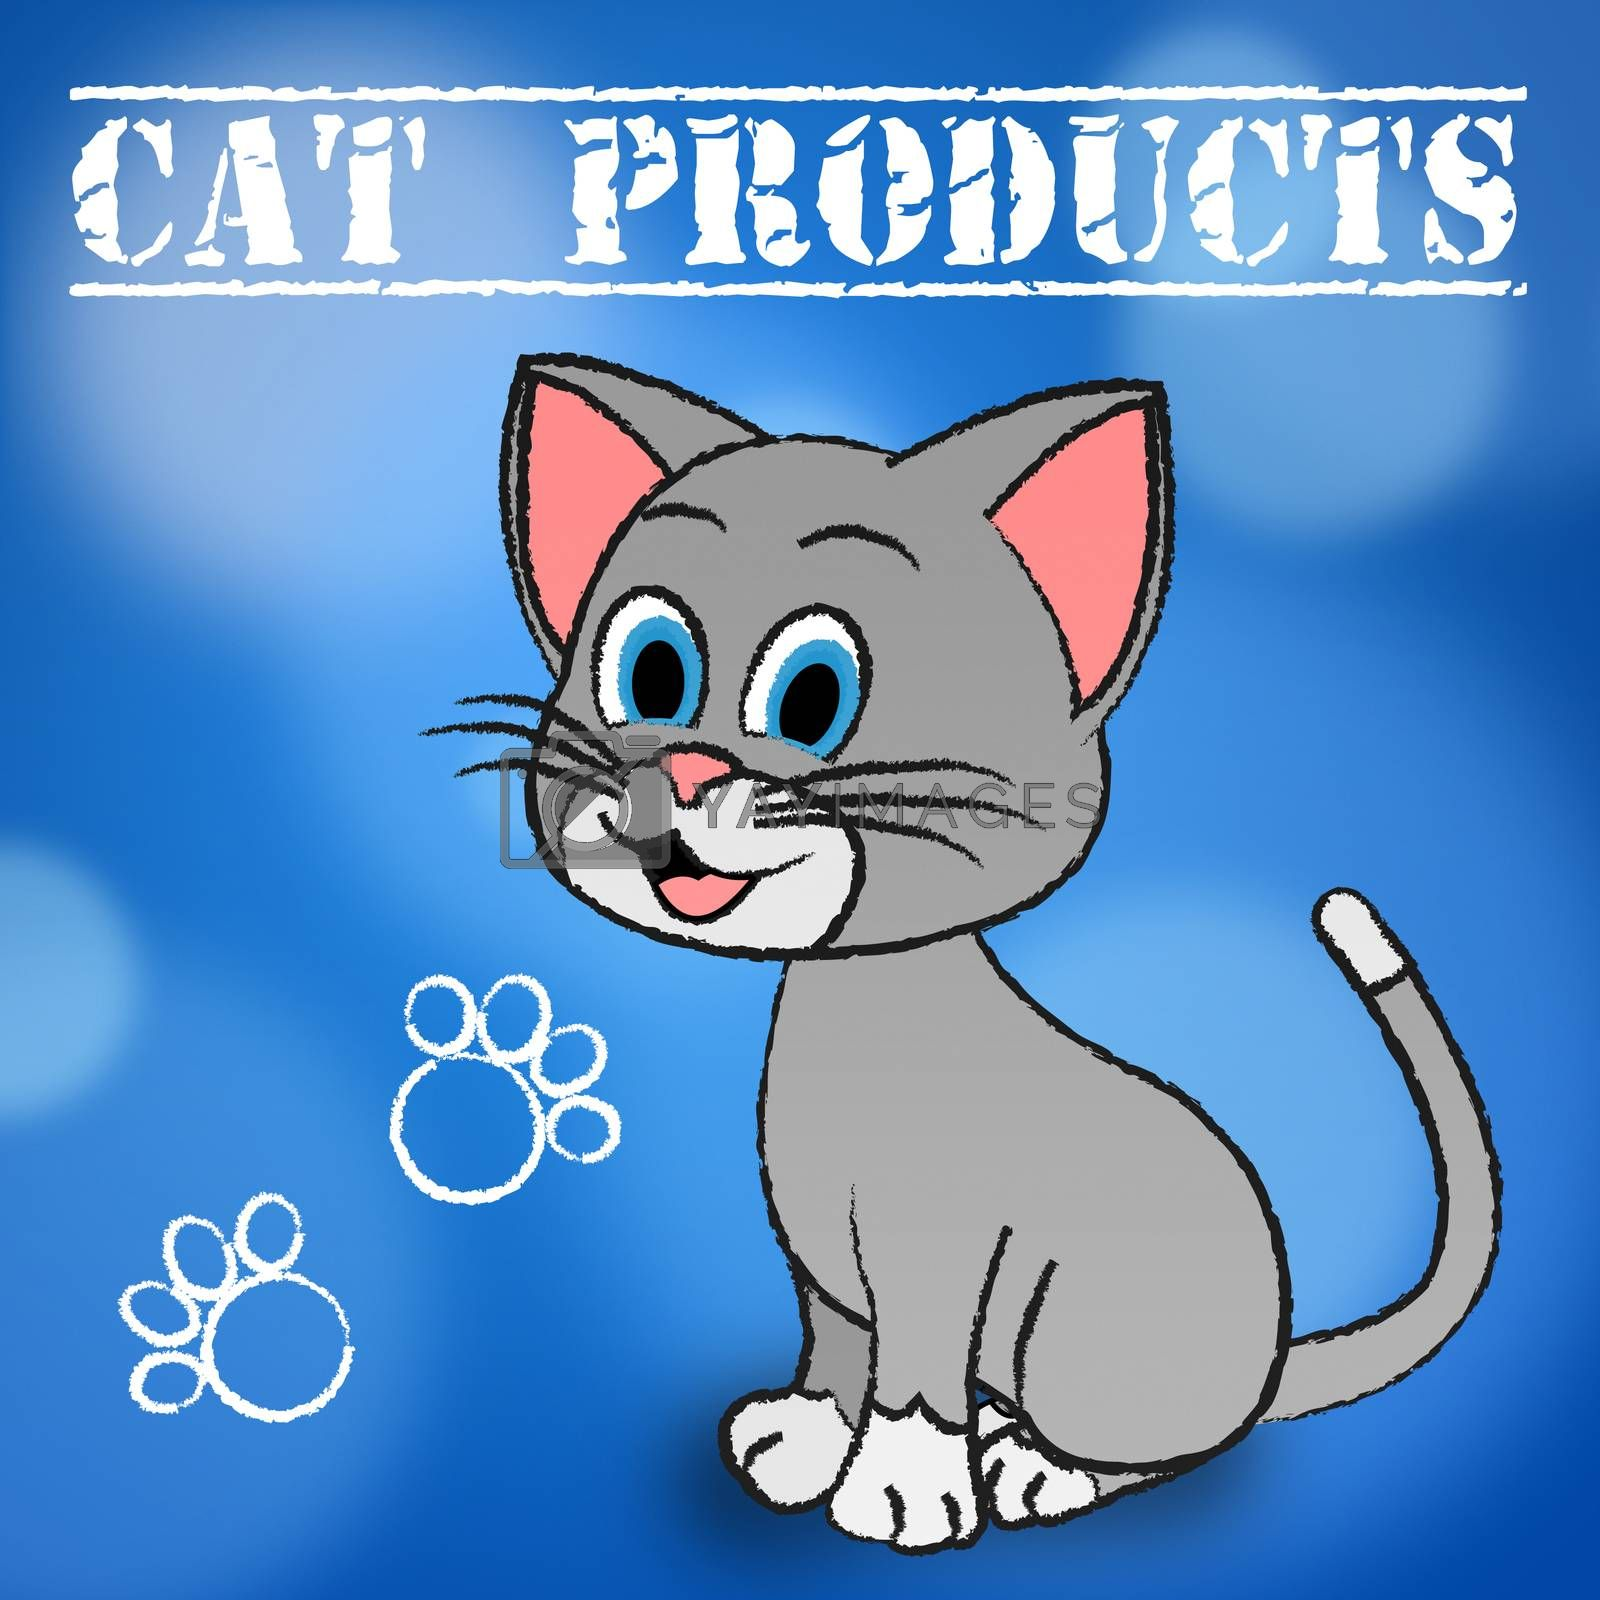 Cat Products Showing Feline Pedigree And Shopping